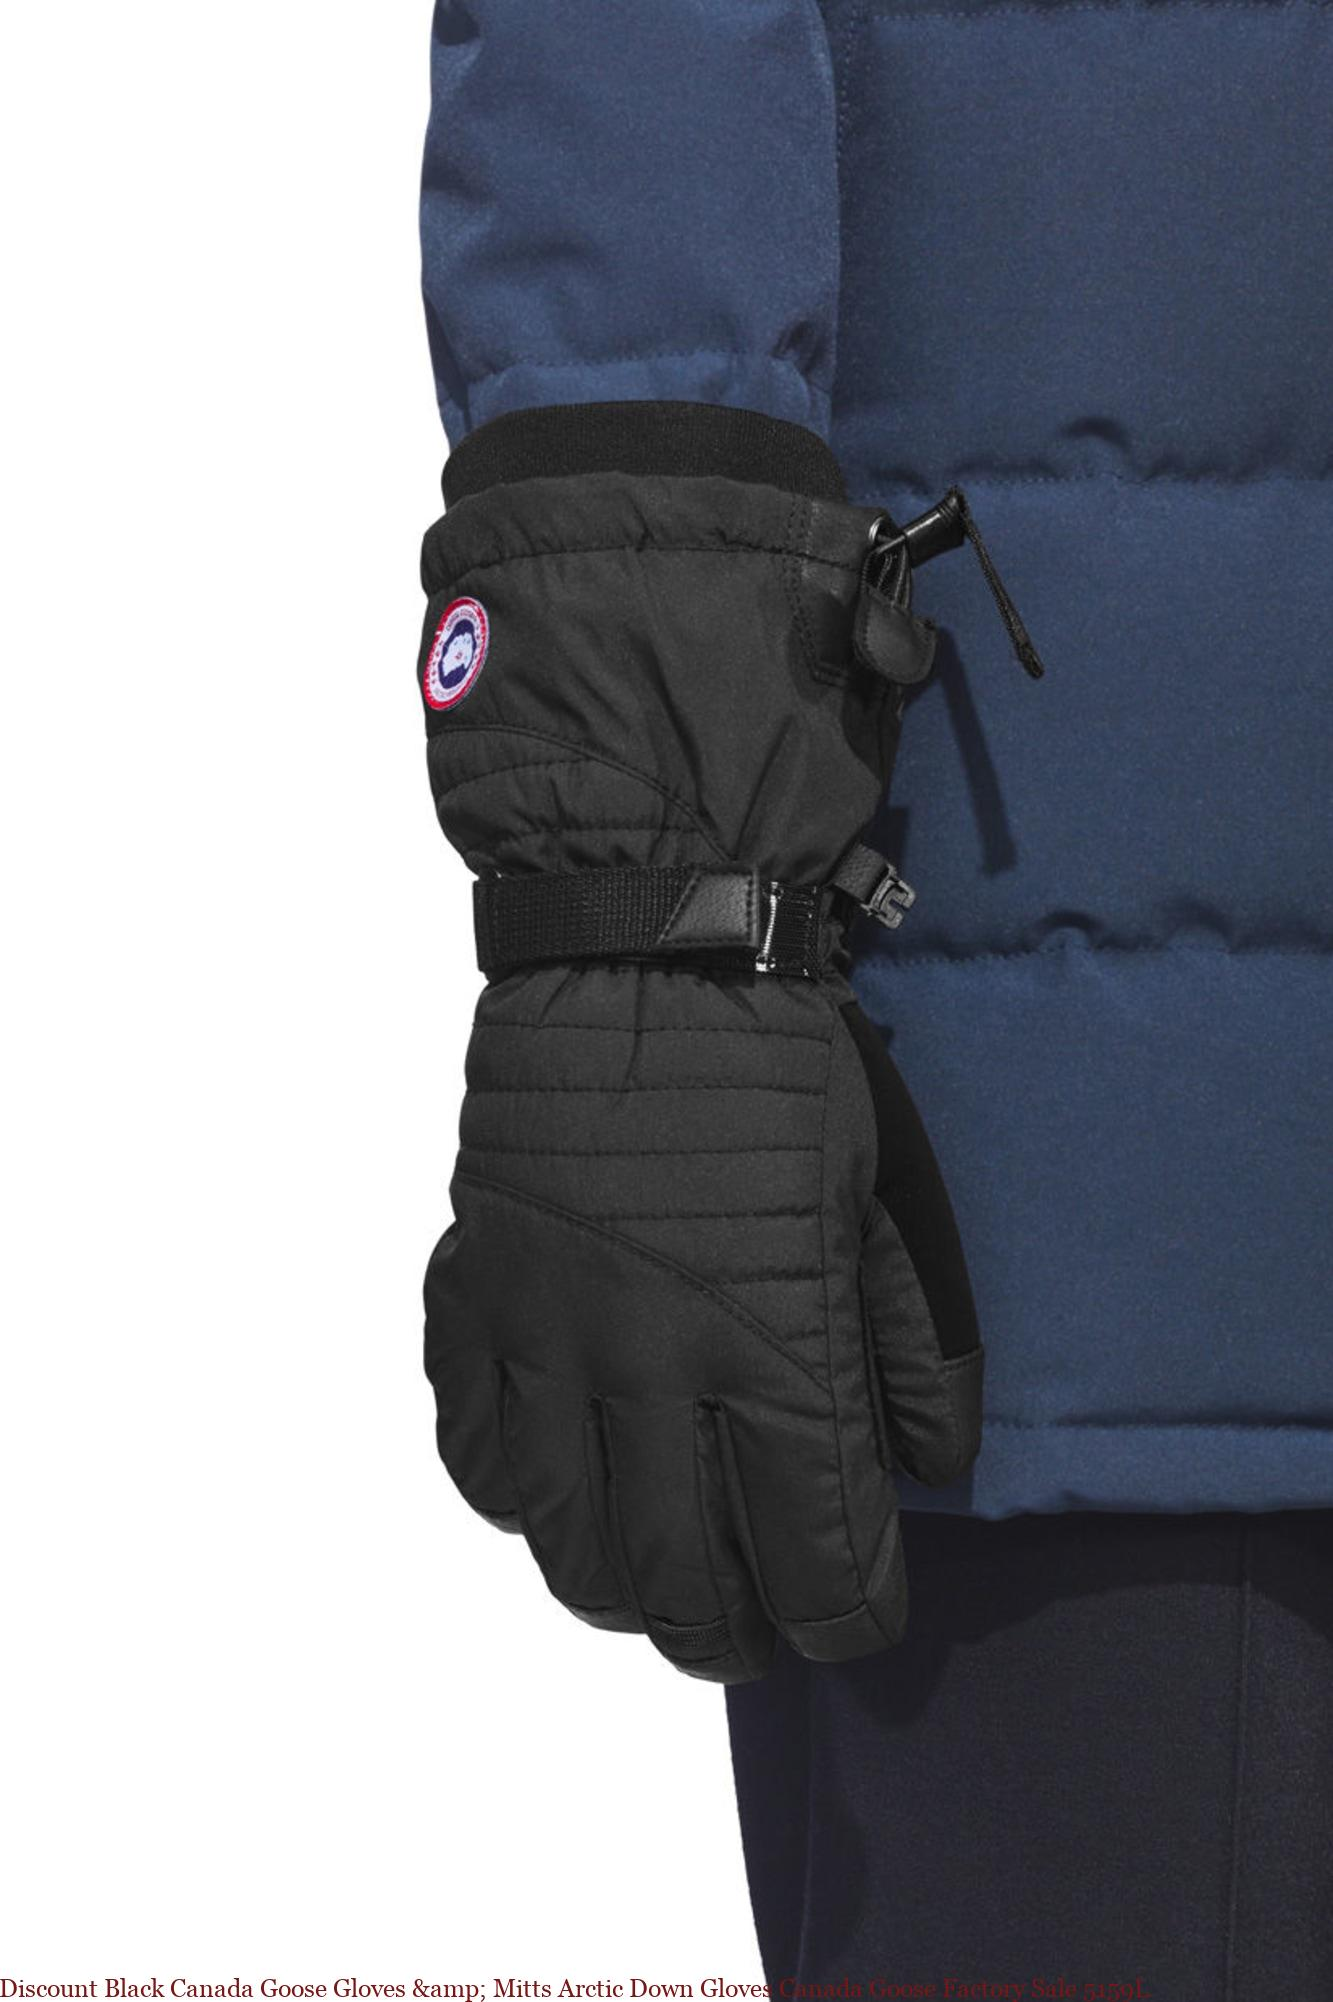 Discount Black Canada Goose Gloves Mitts Arctic Down Gloves Canada Goose Factory Sale 5159l